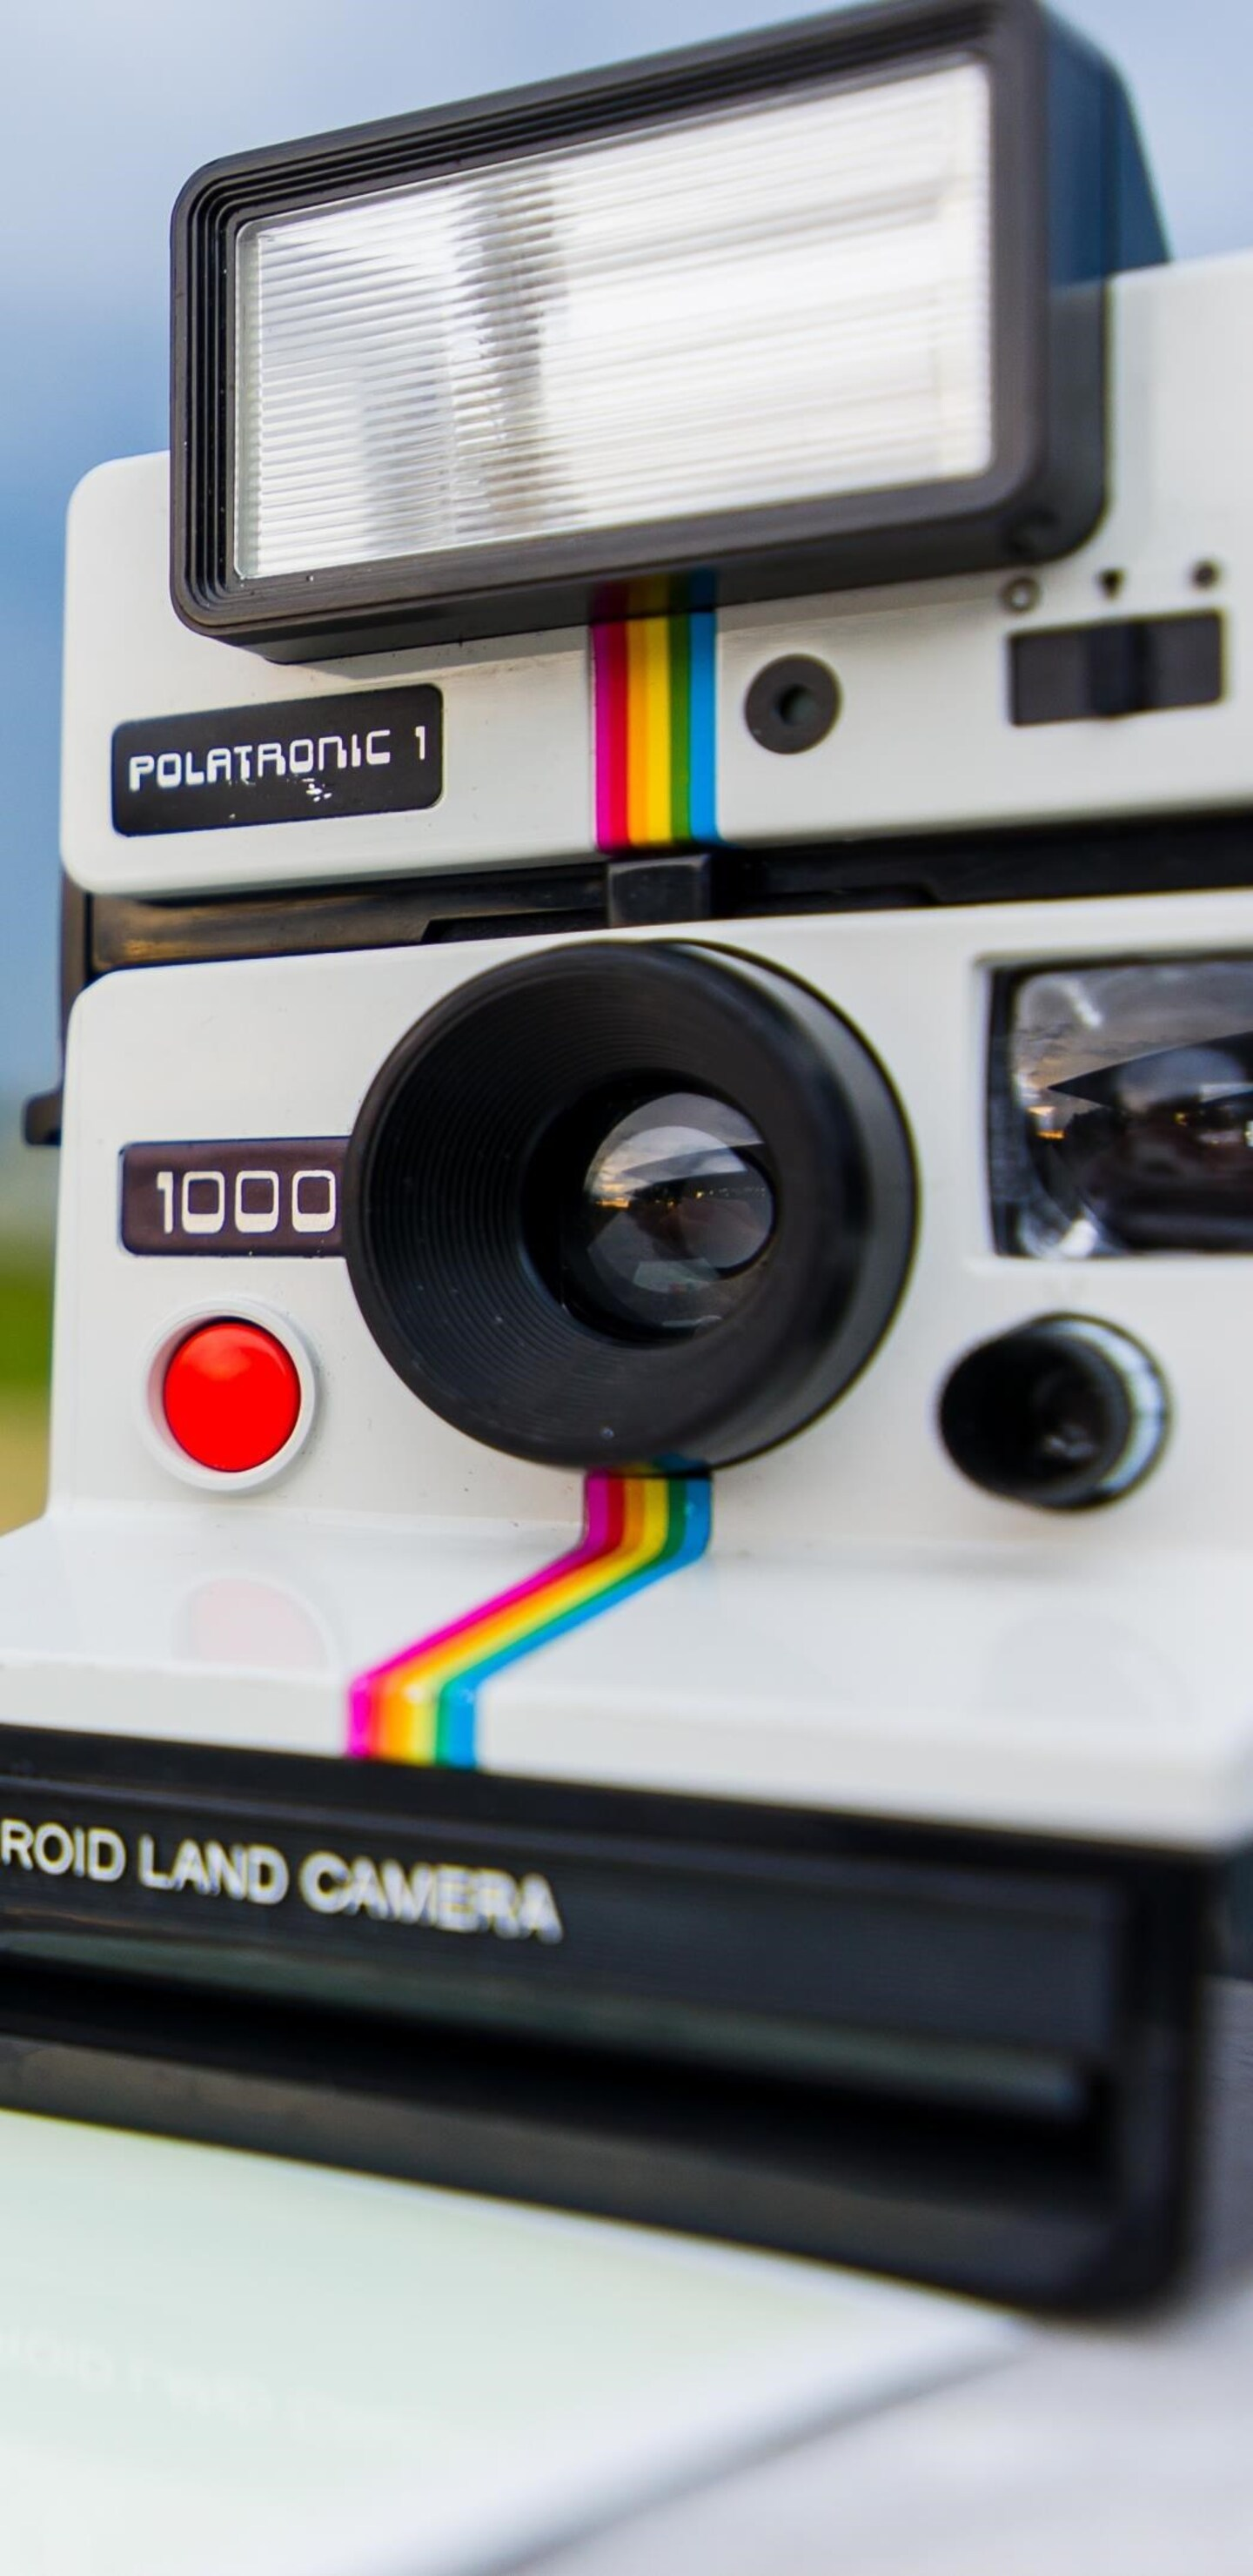 polaroid-land-camera-new.jpg